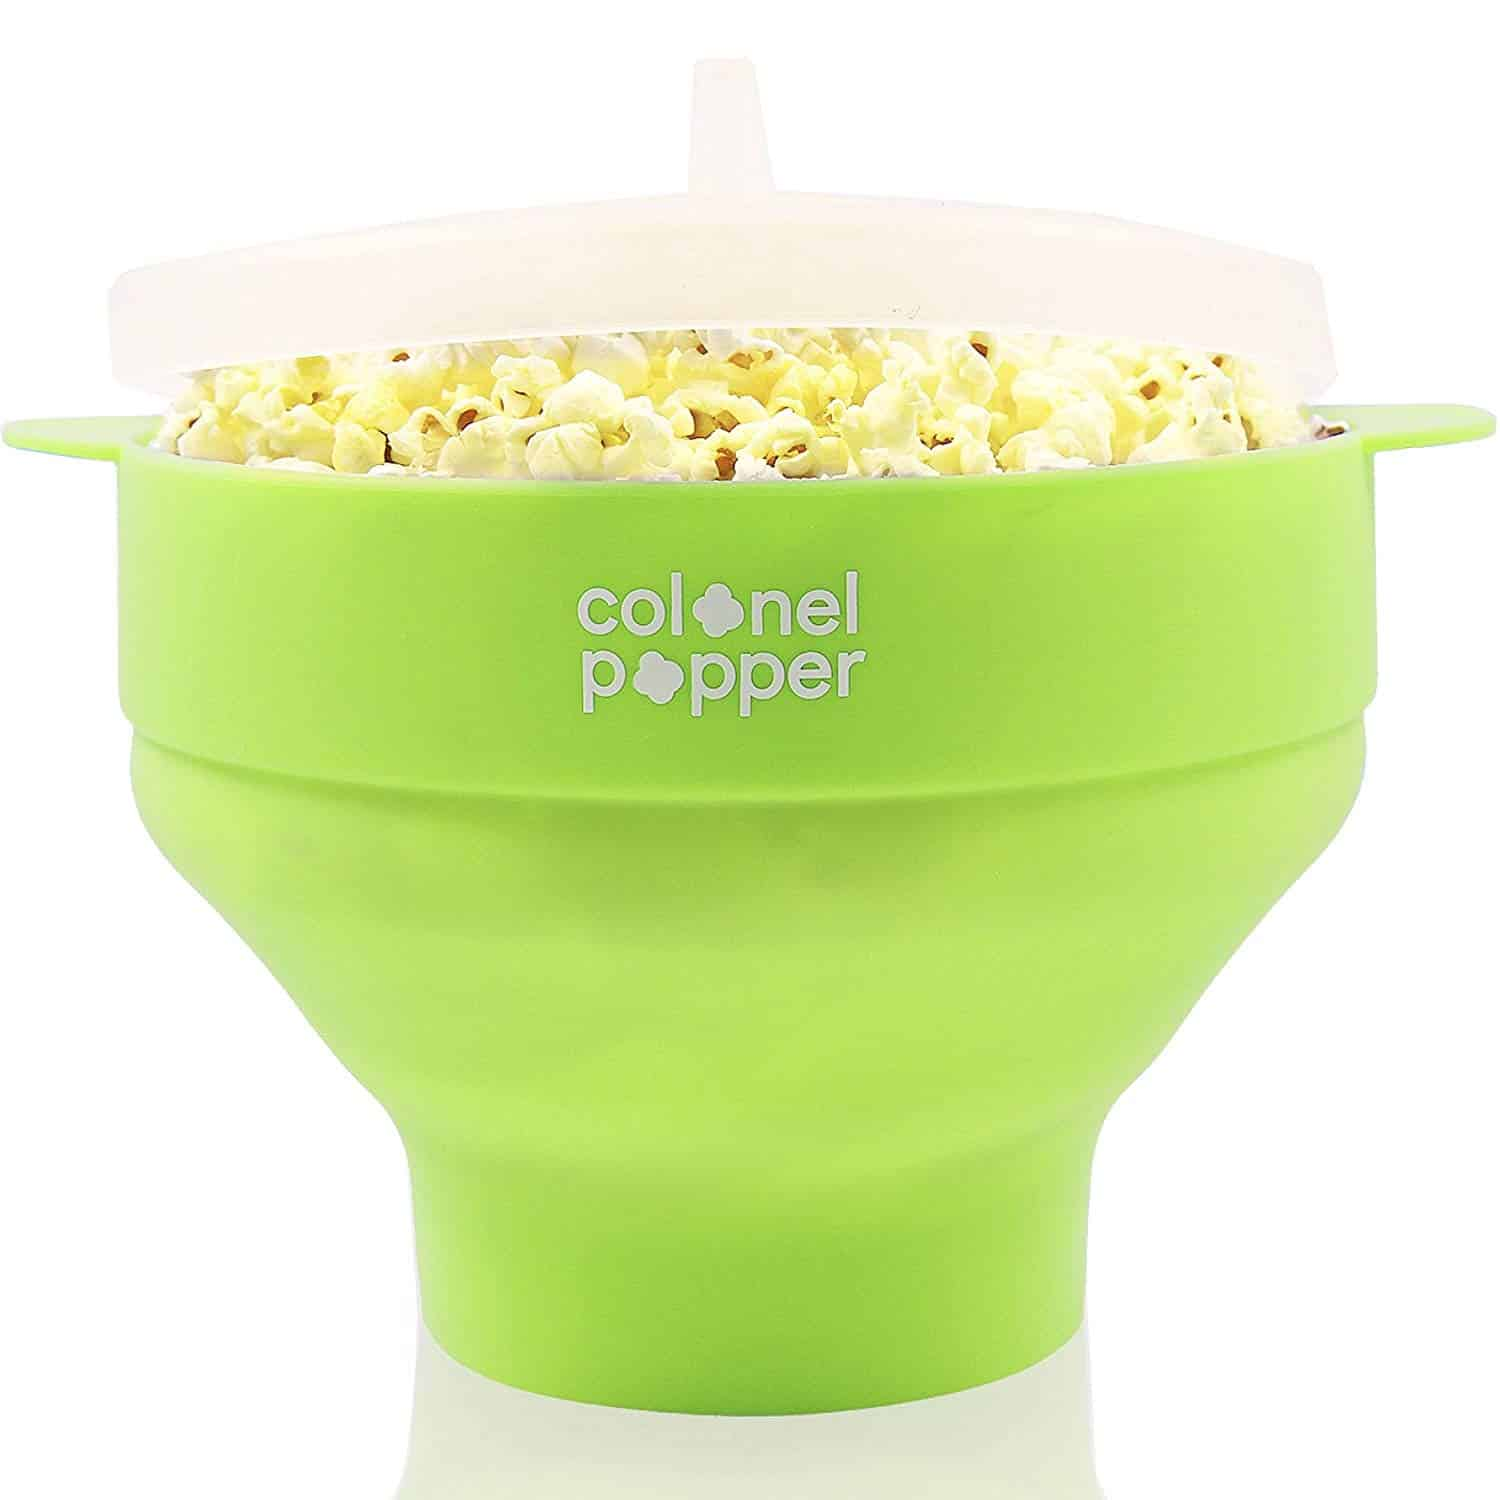 Colonel Microwave Popcorn Bowl Review